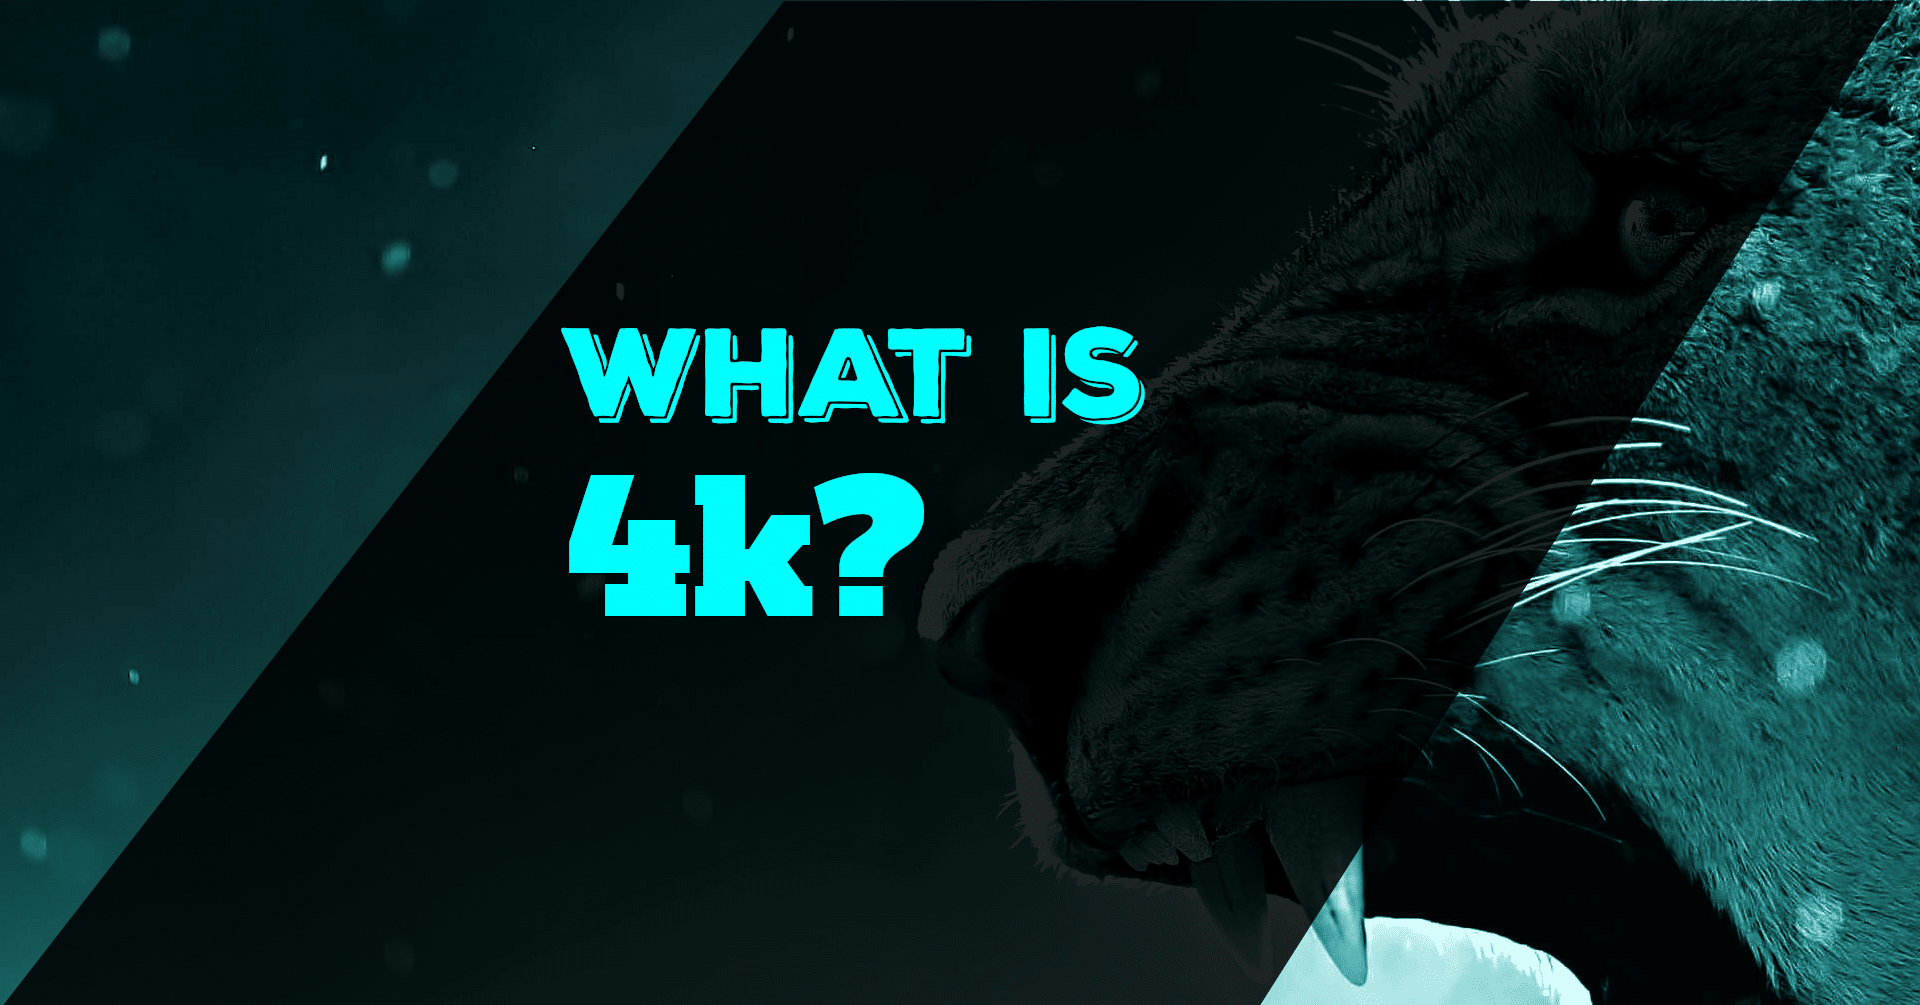 What Is 4k Video?